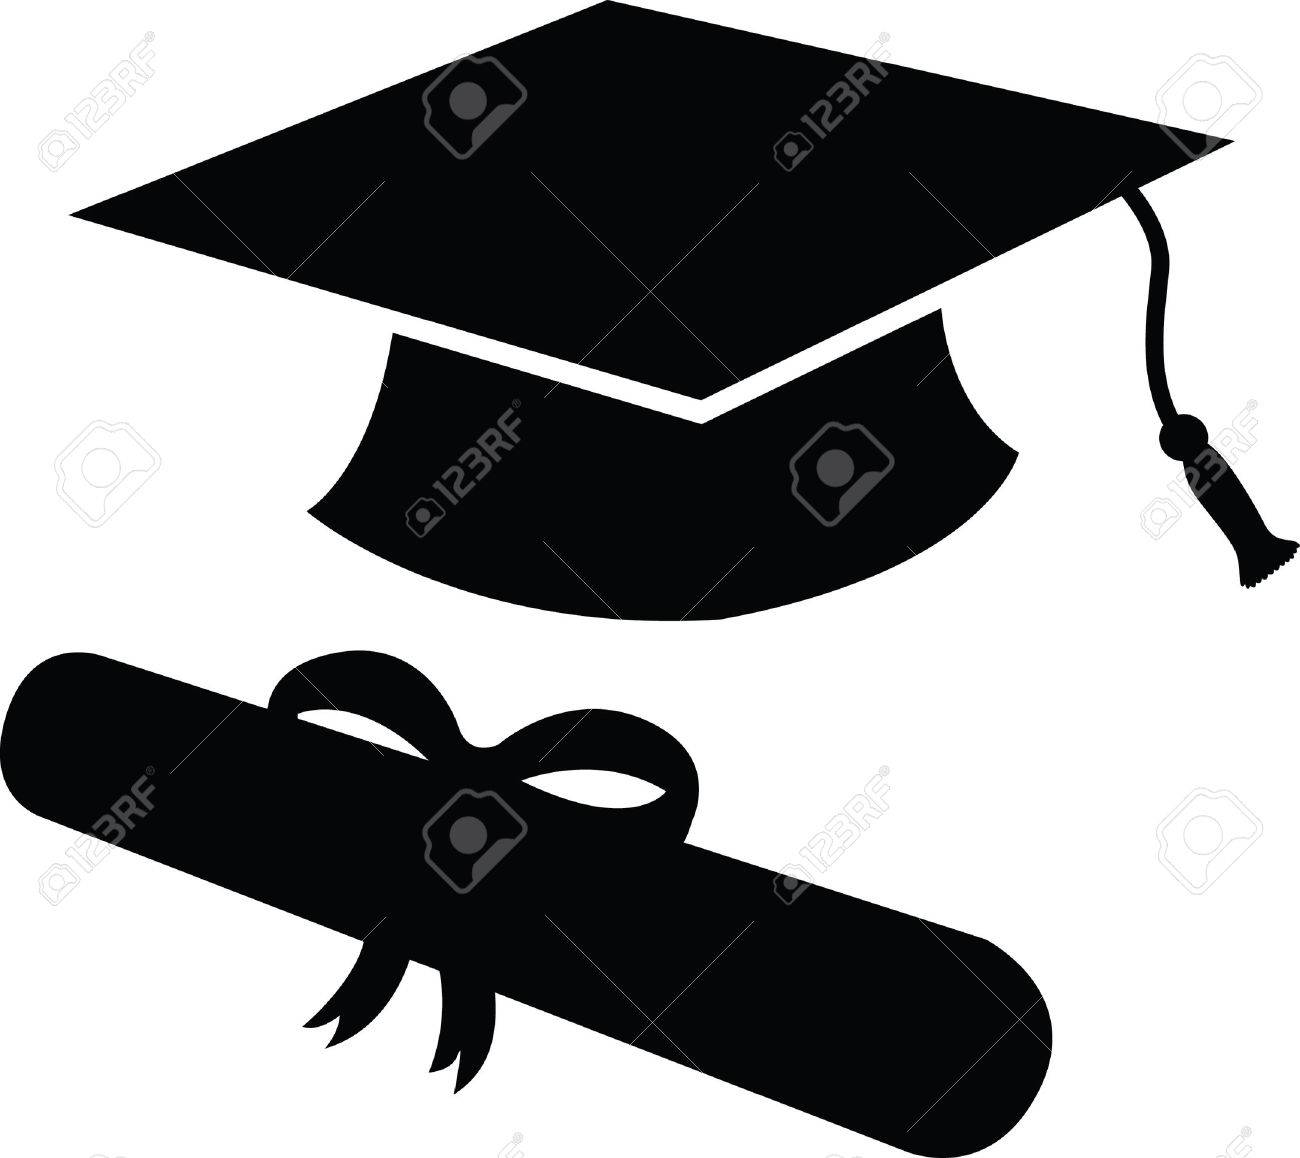 1300x1158 Graduation Cap And Diploma In Black Silhouette, Icon Or Symbol